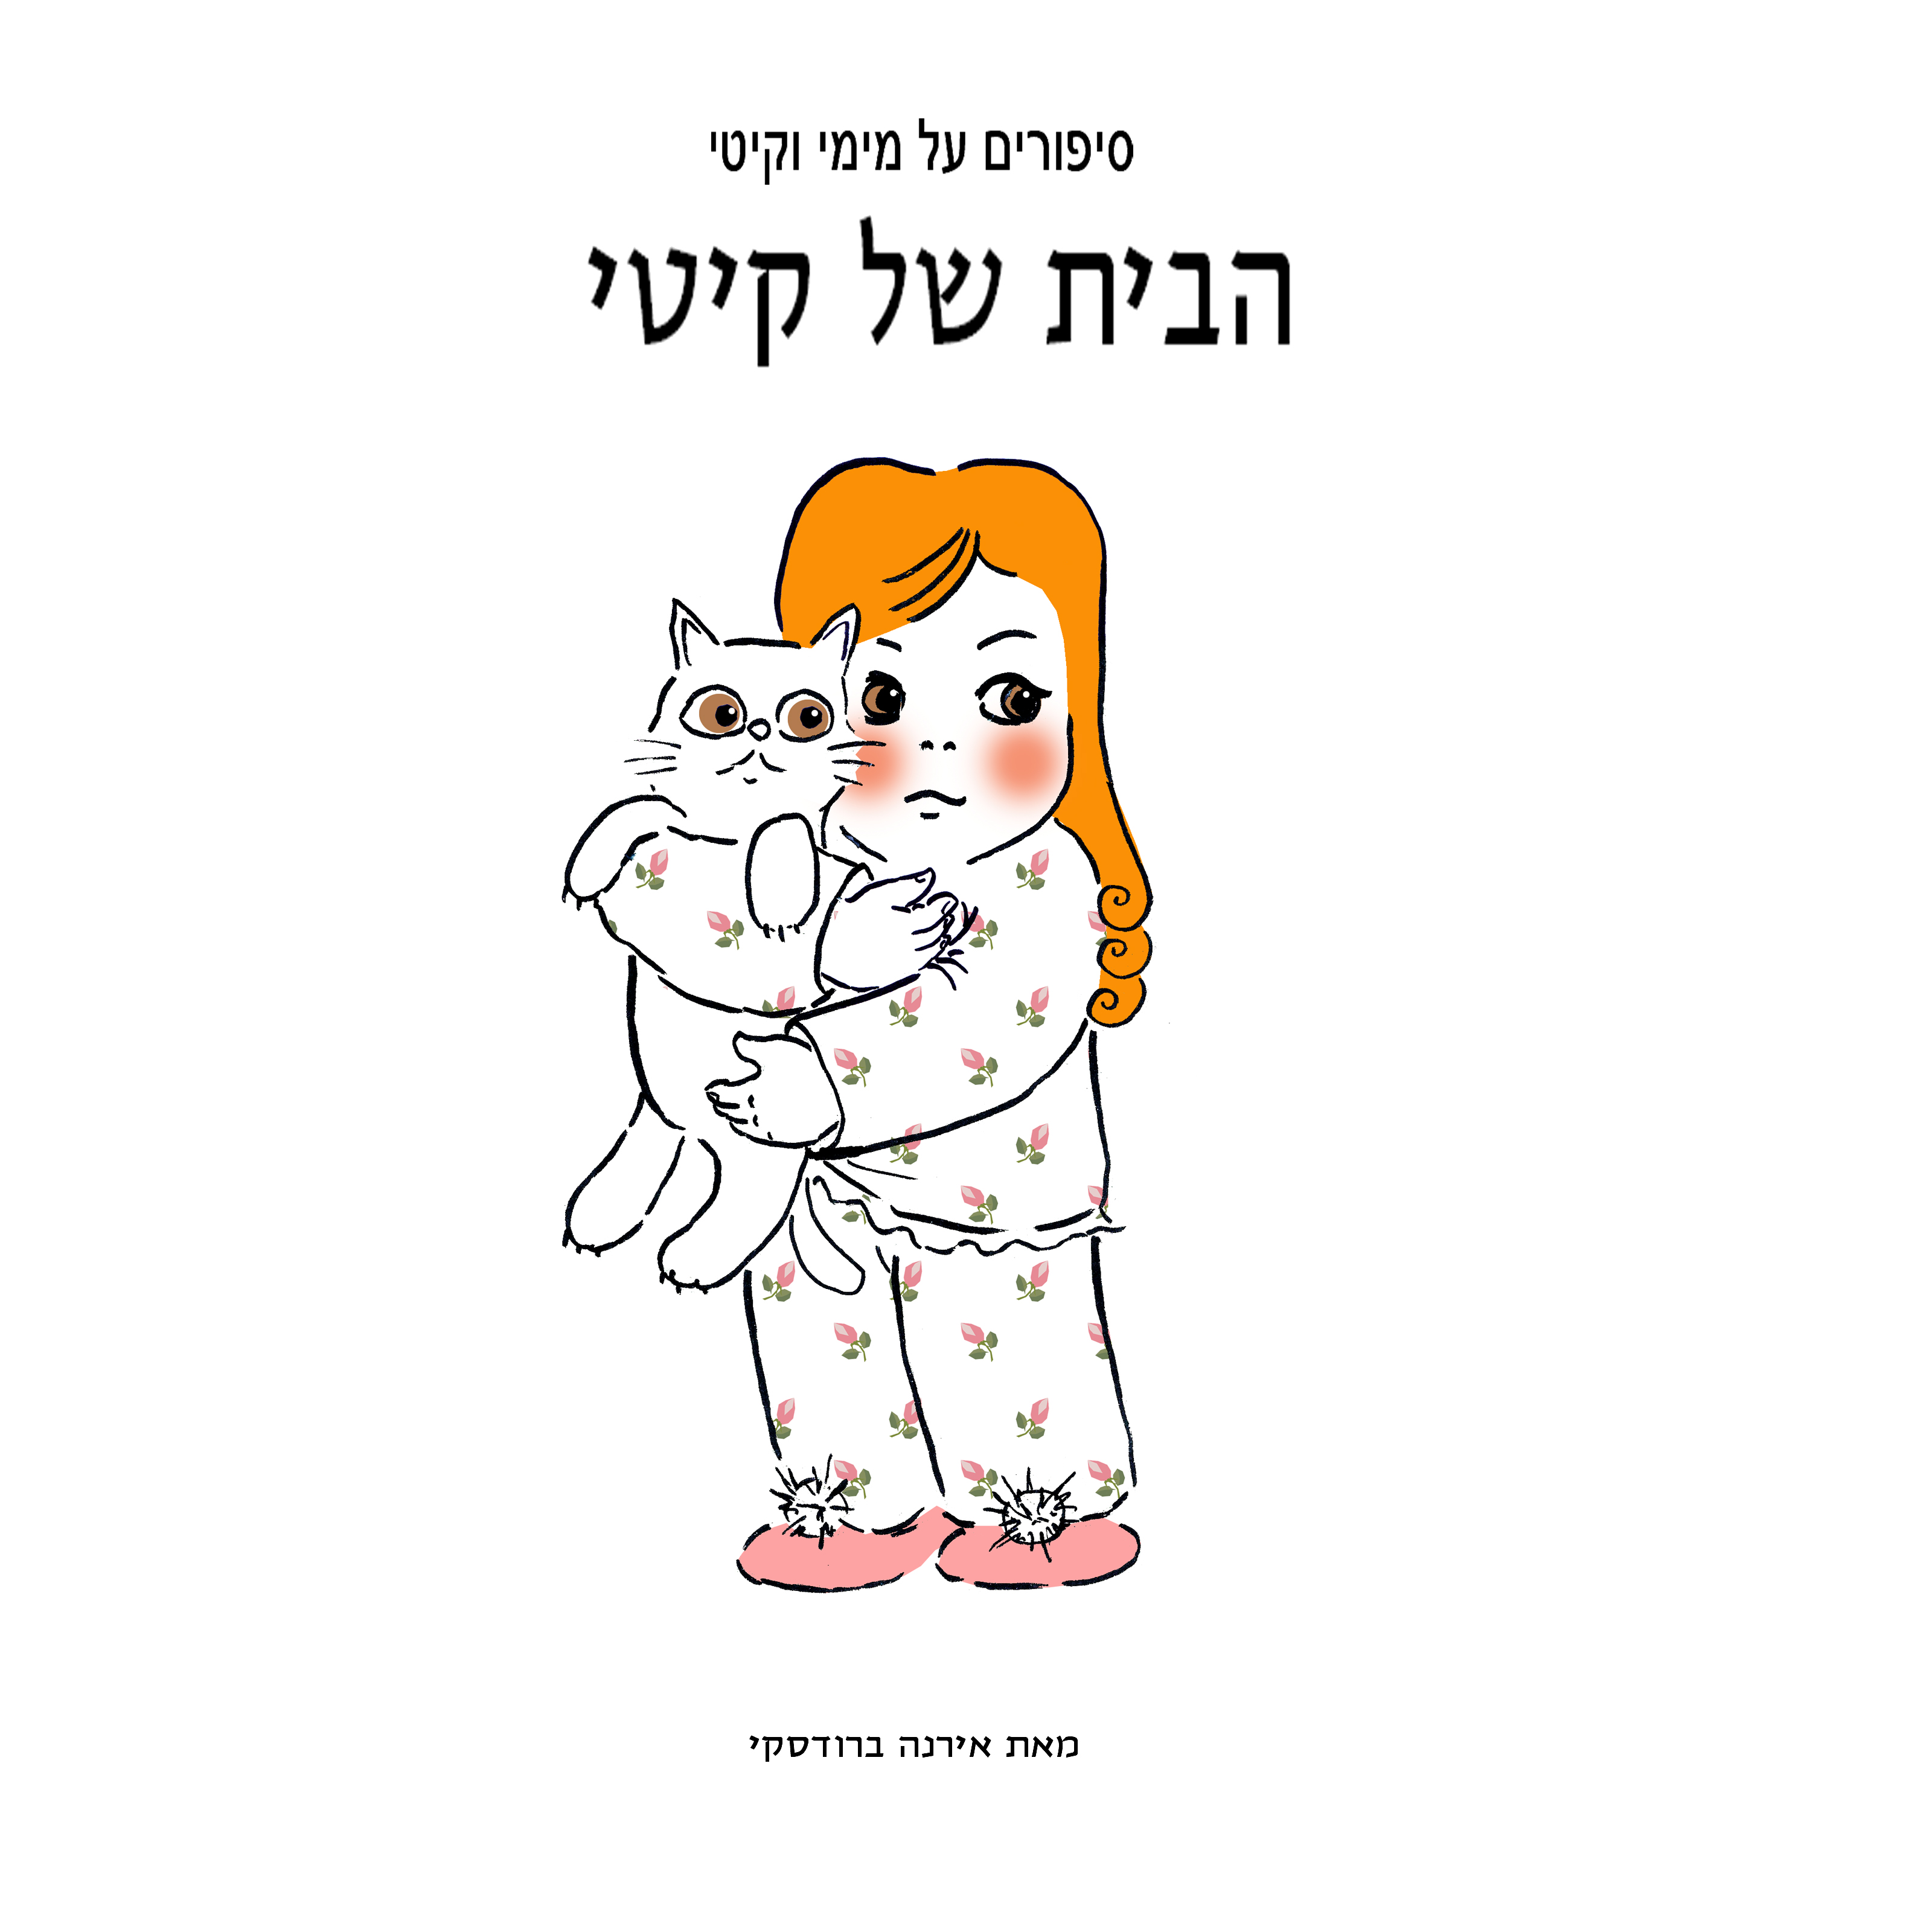 מימי&קיטי – 3 – הבית החדש של קיטי by Irena Brodeski - Illustrated by Irena Brodeski - Ourboox.com